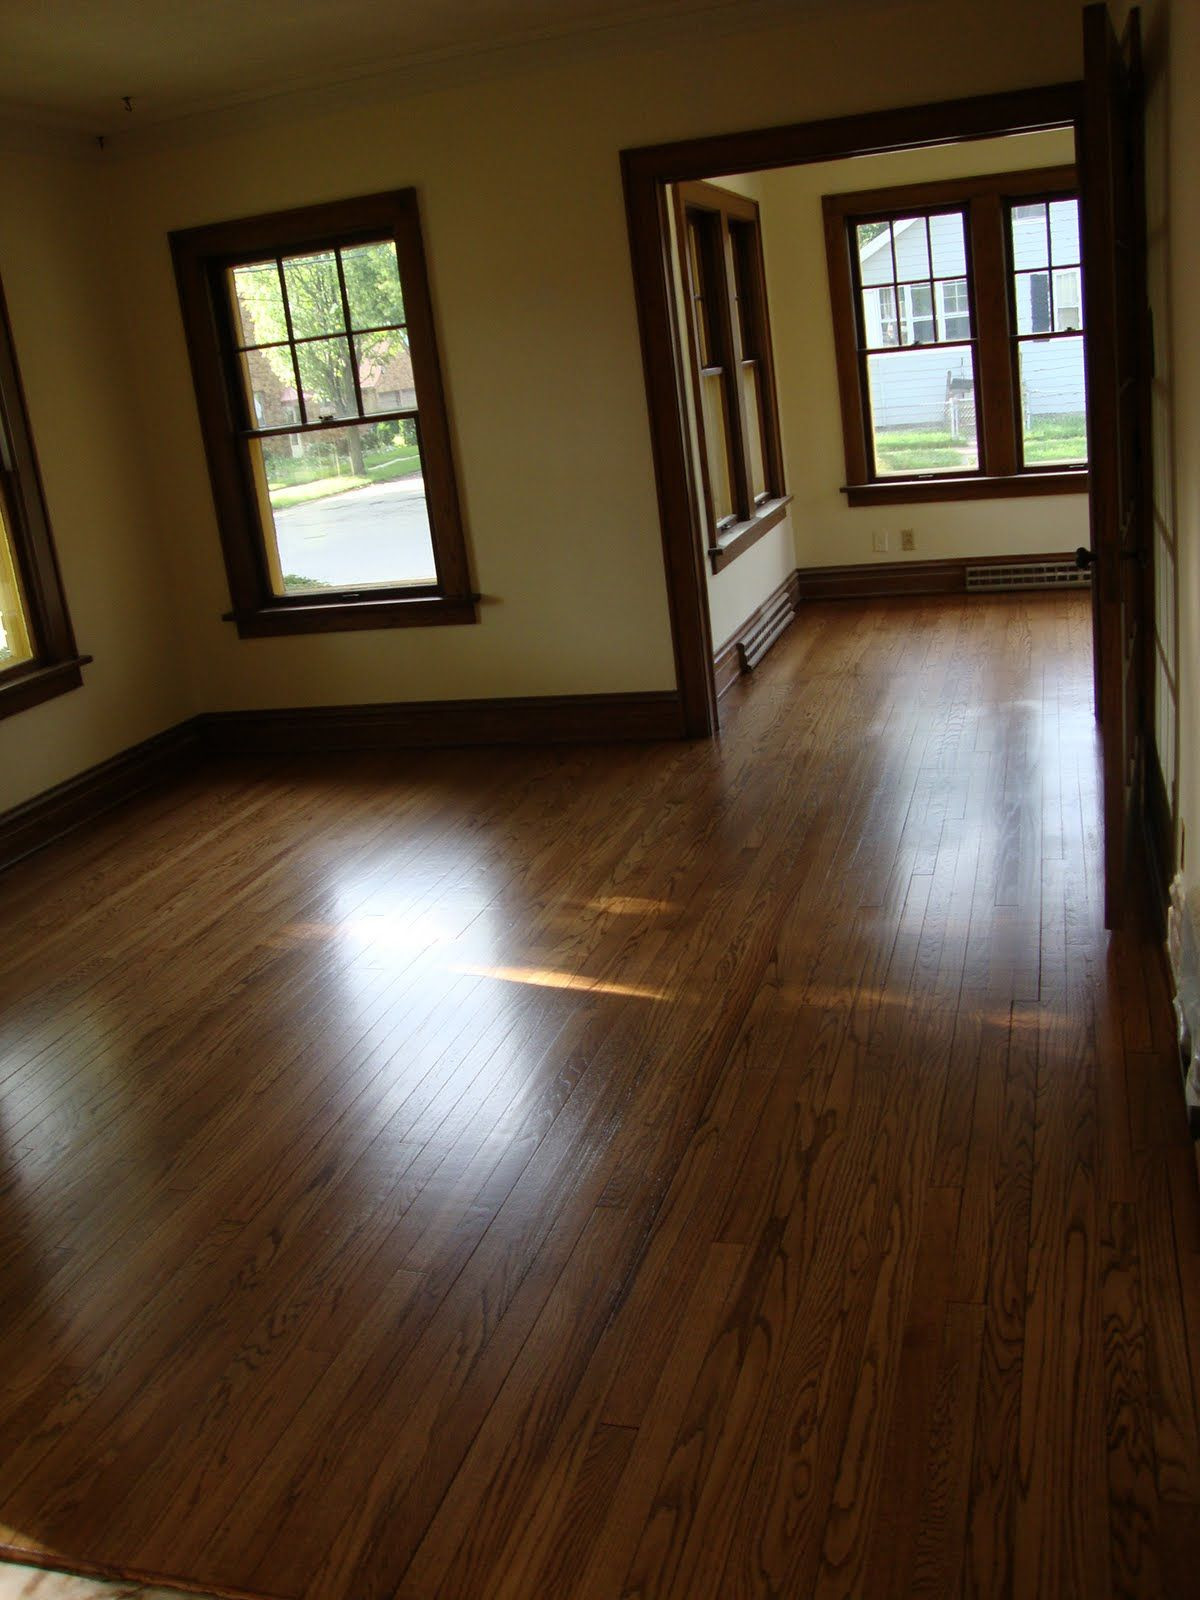 pictures of hardwood floors with white trim of grey walls dark wood floors dark wood trim with hardwood floors and with regard to grey walls dark wood floors dark wood trim with hardwood floors and lighter not sterile white